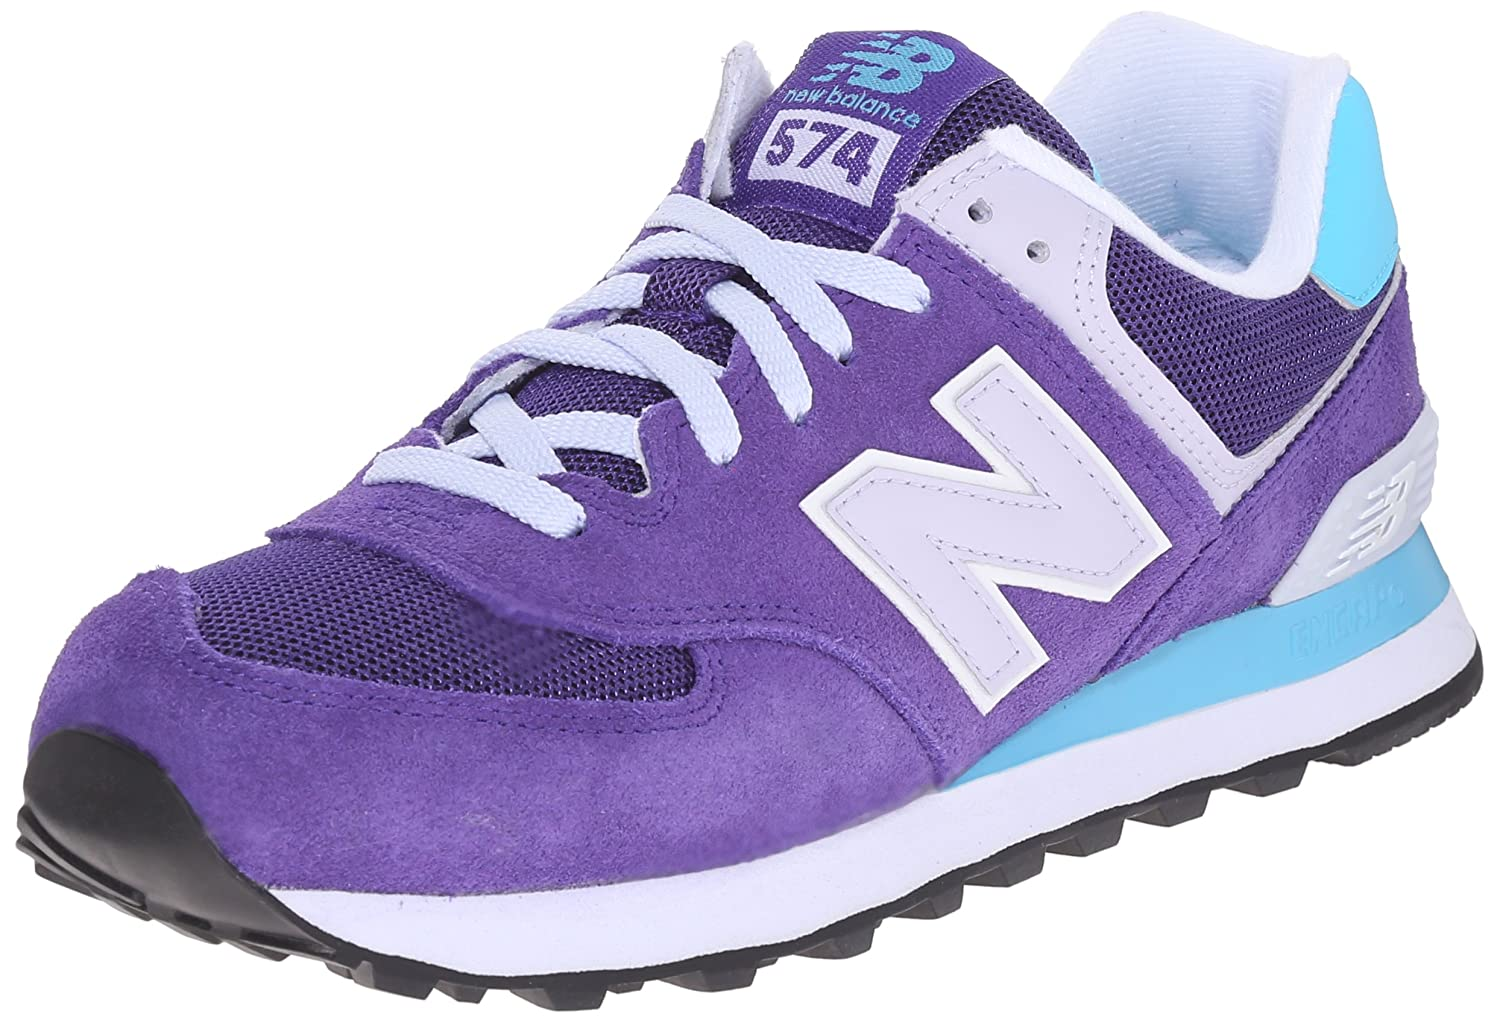 New Balance Women's WL574 CORE Plus-W Lifestyle Sneaker B00Z655WNY 7 B(M) US|Purple